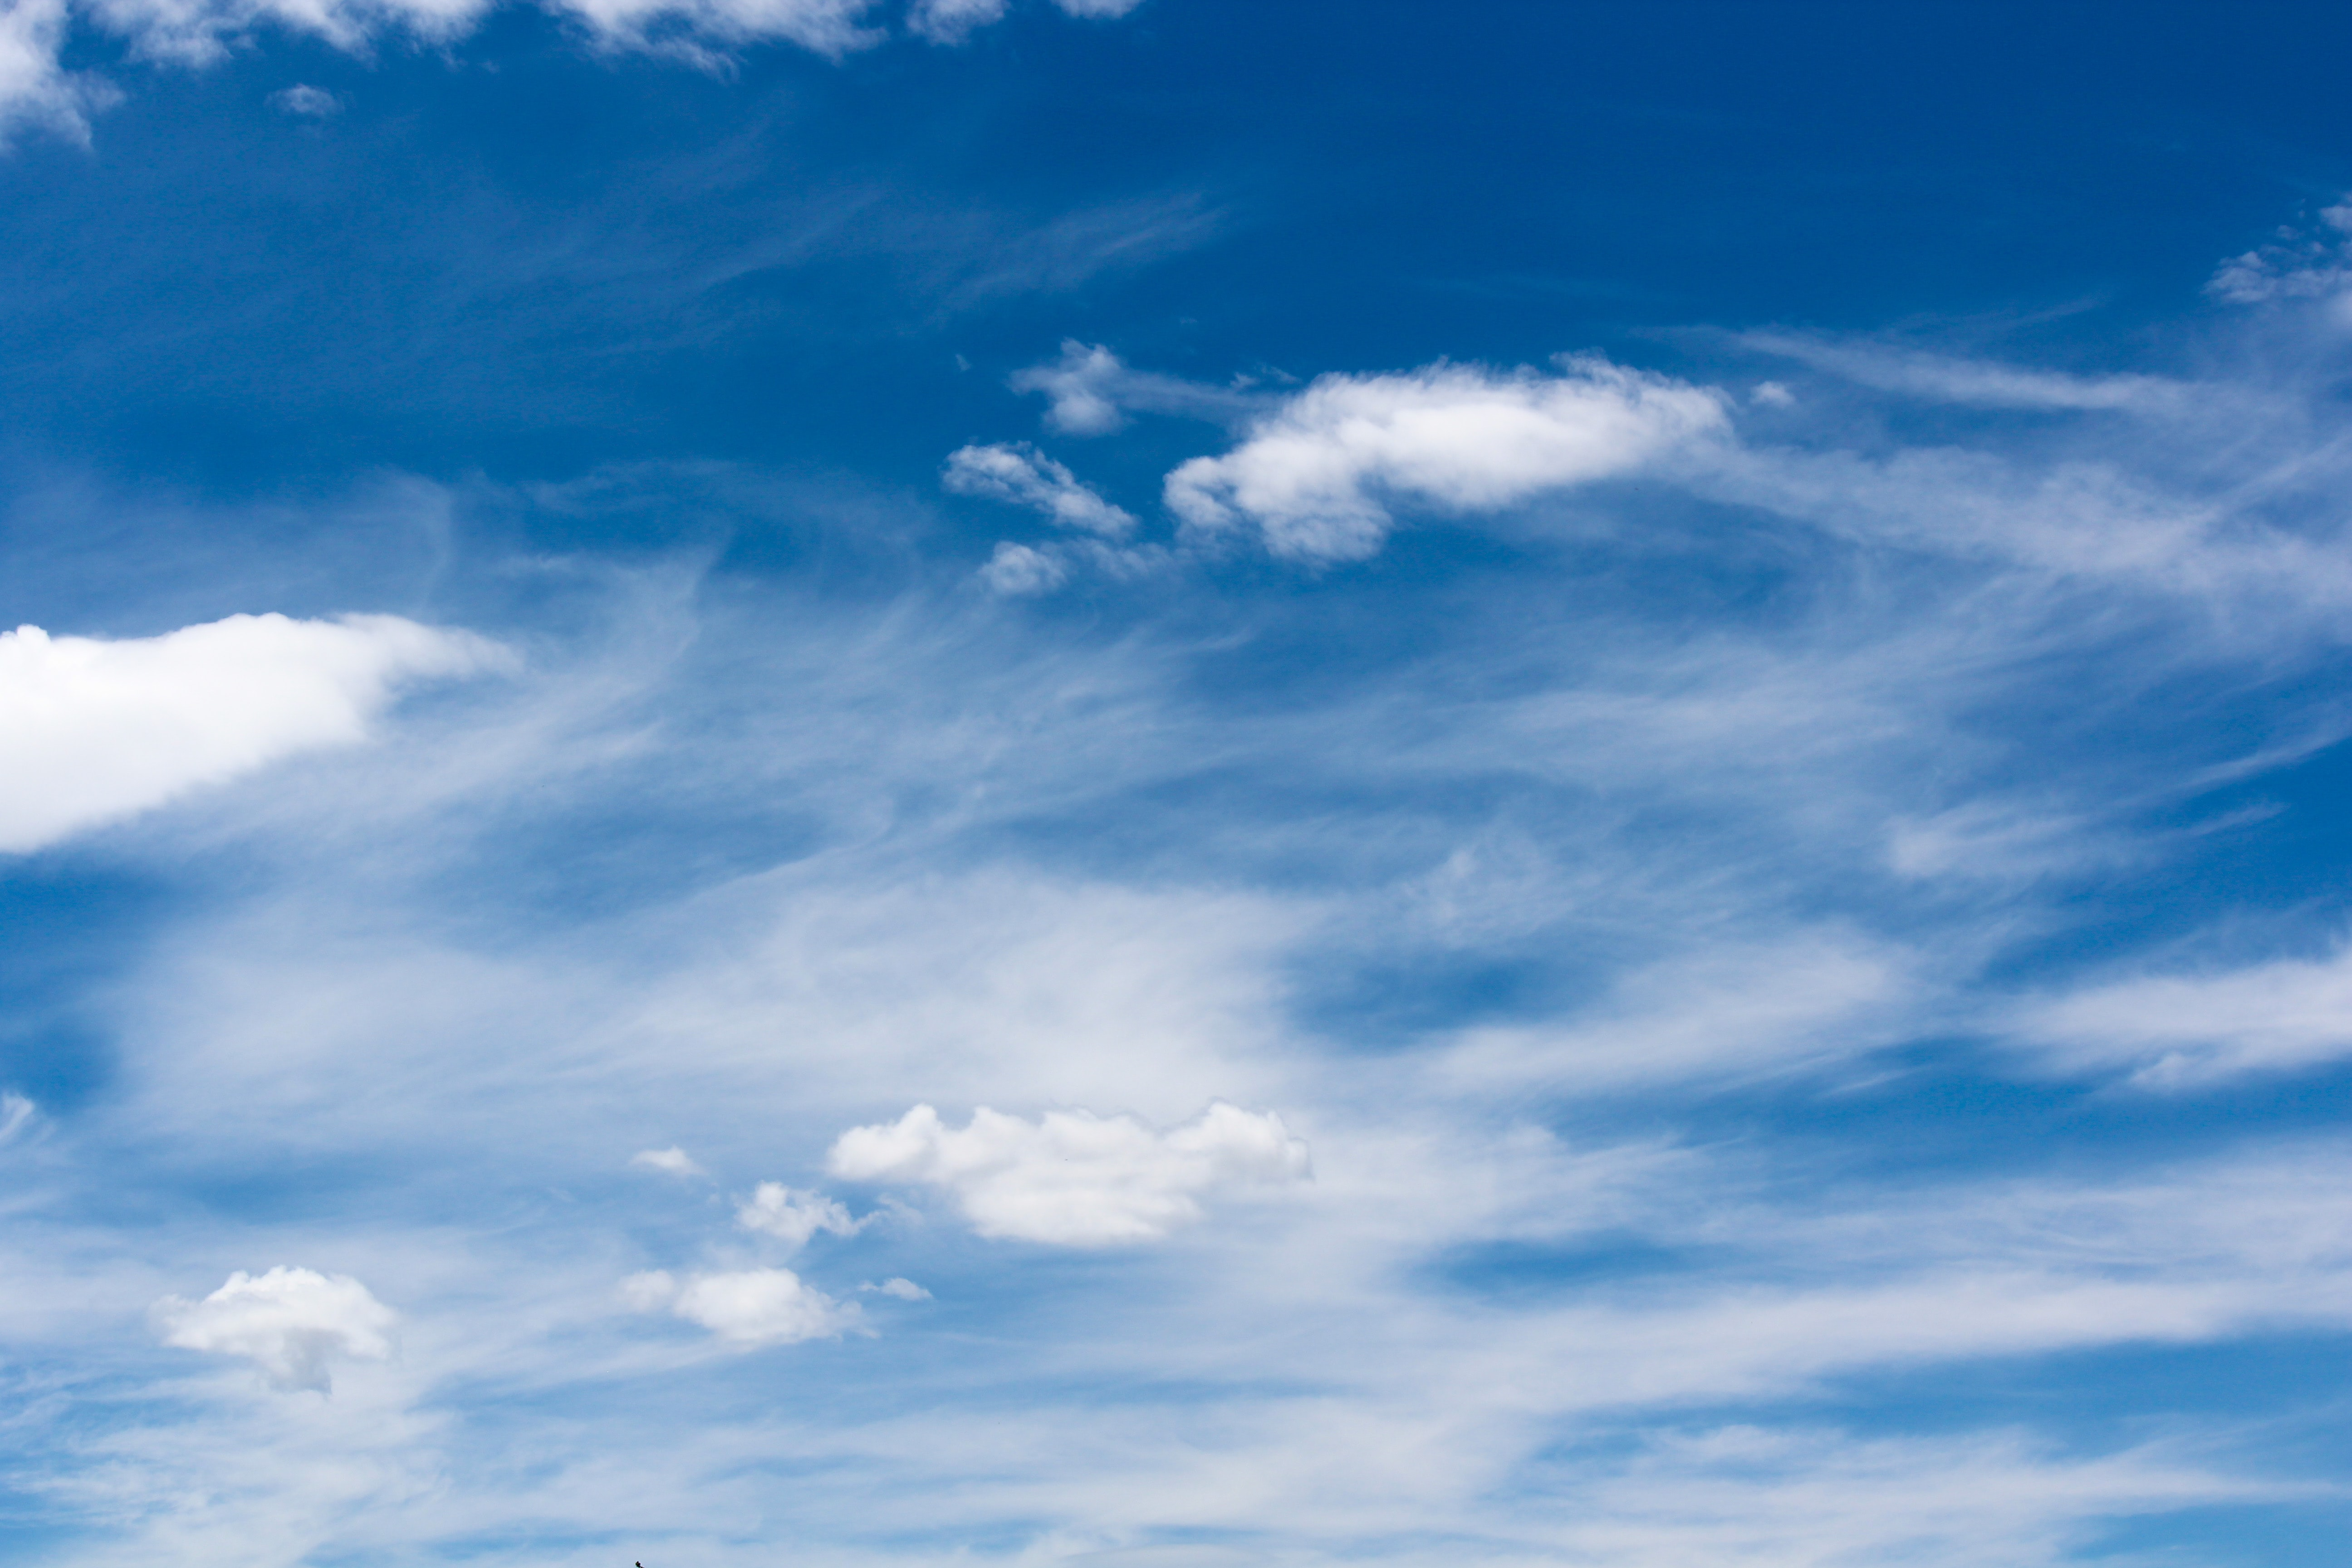 A blue sky with streaks of cirrus clouds in the background and a few puffy clouds in the foreground